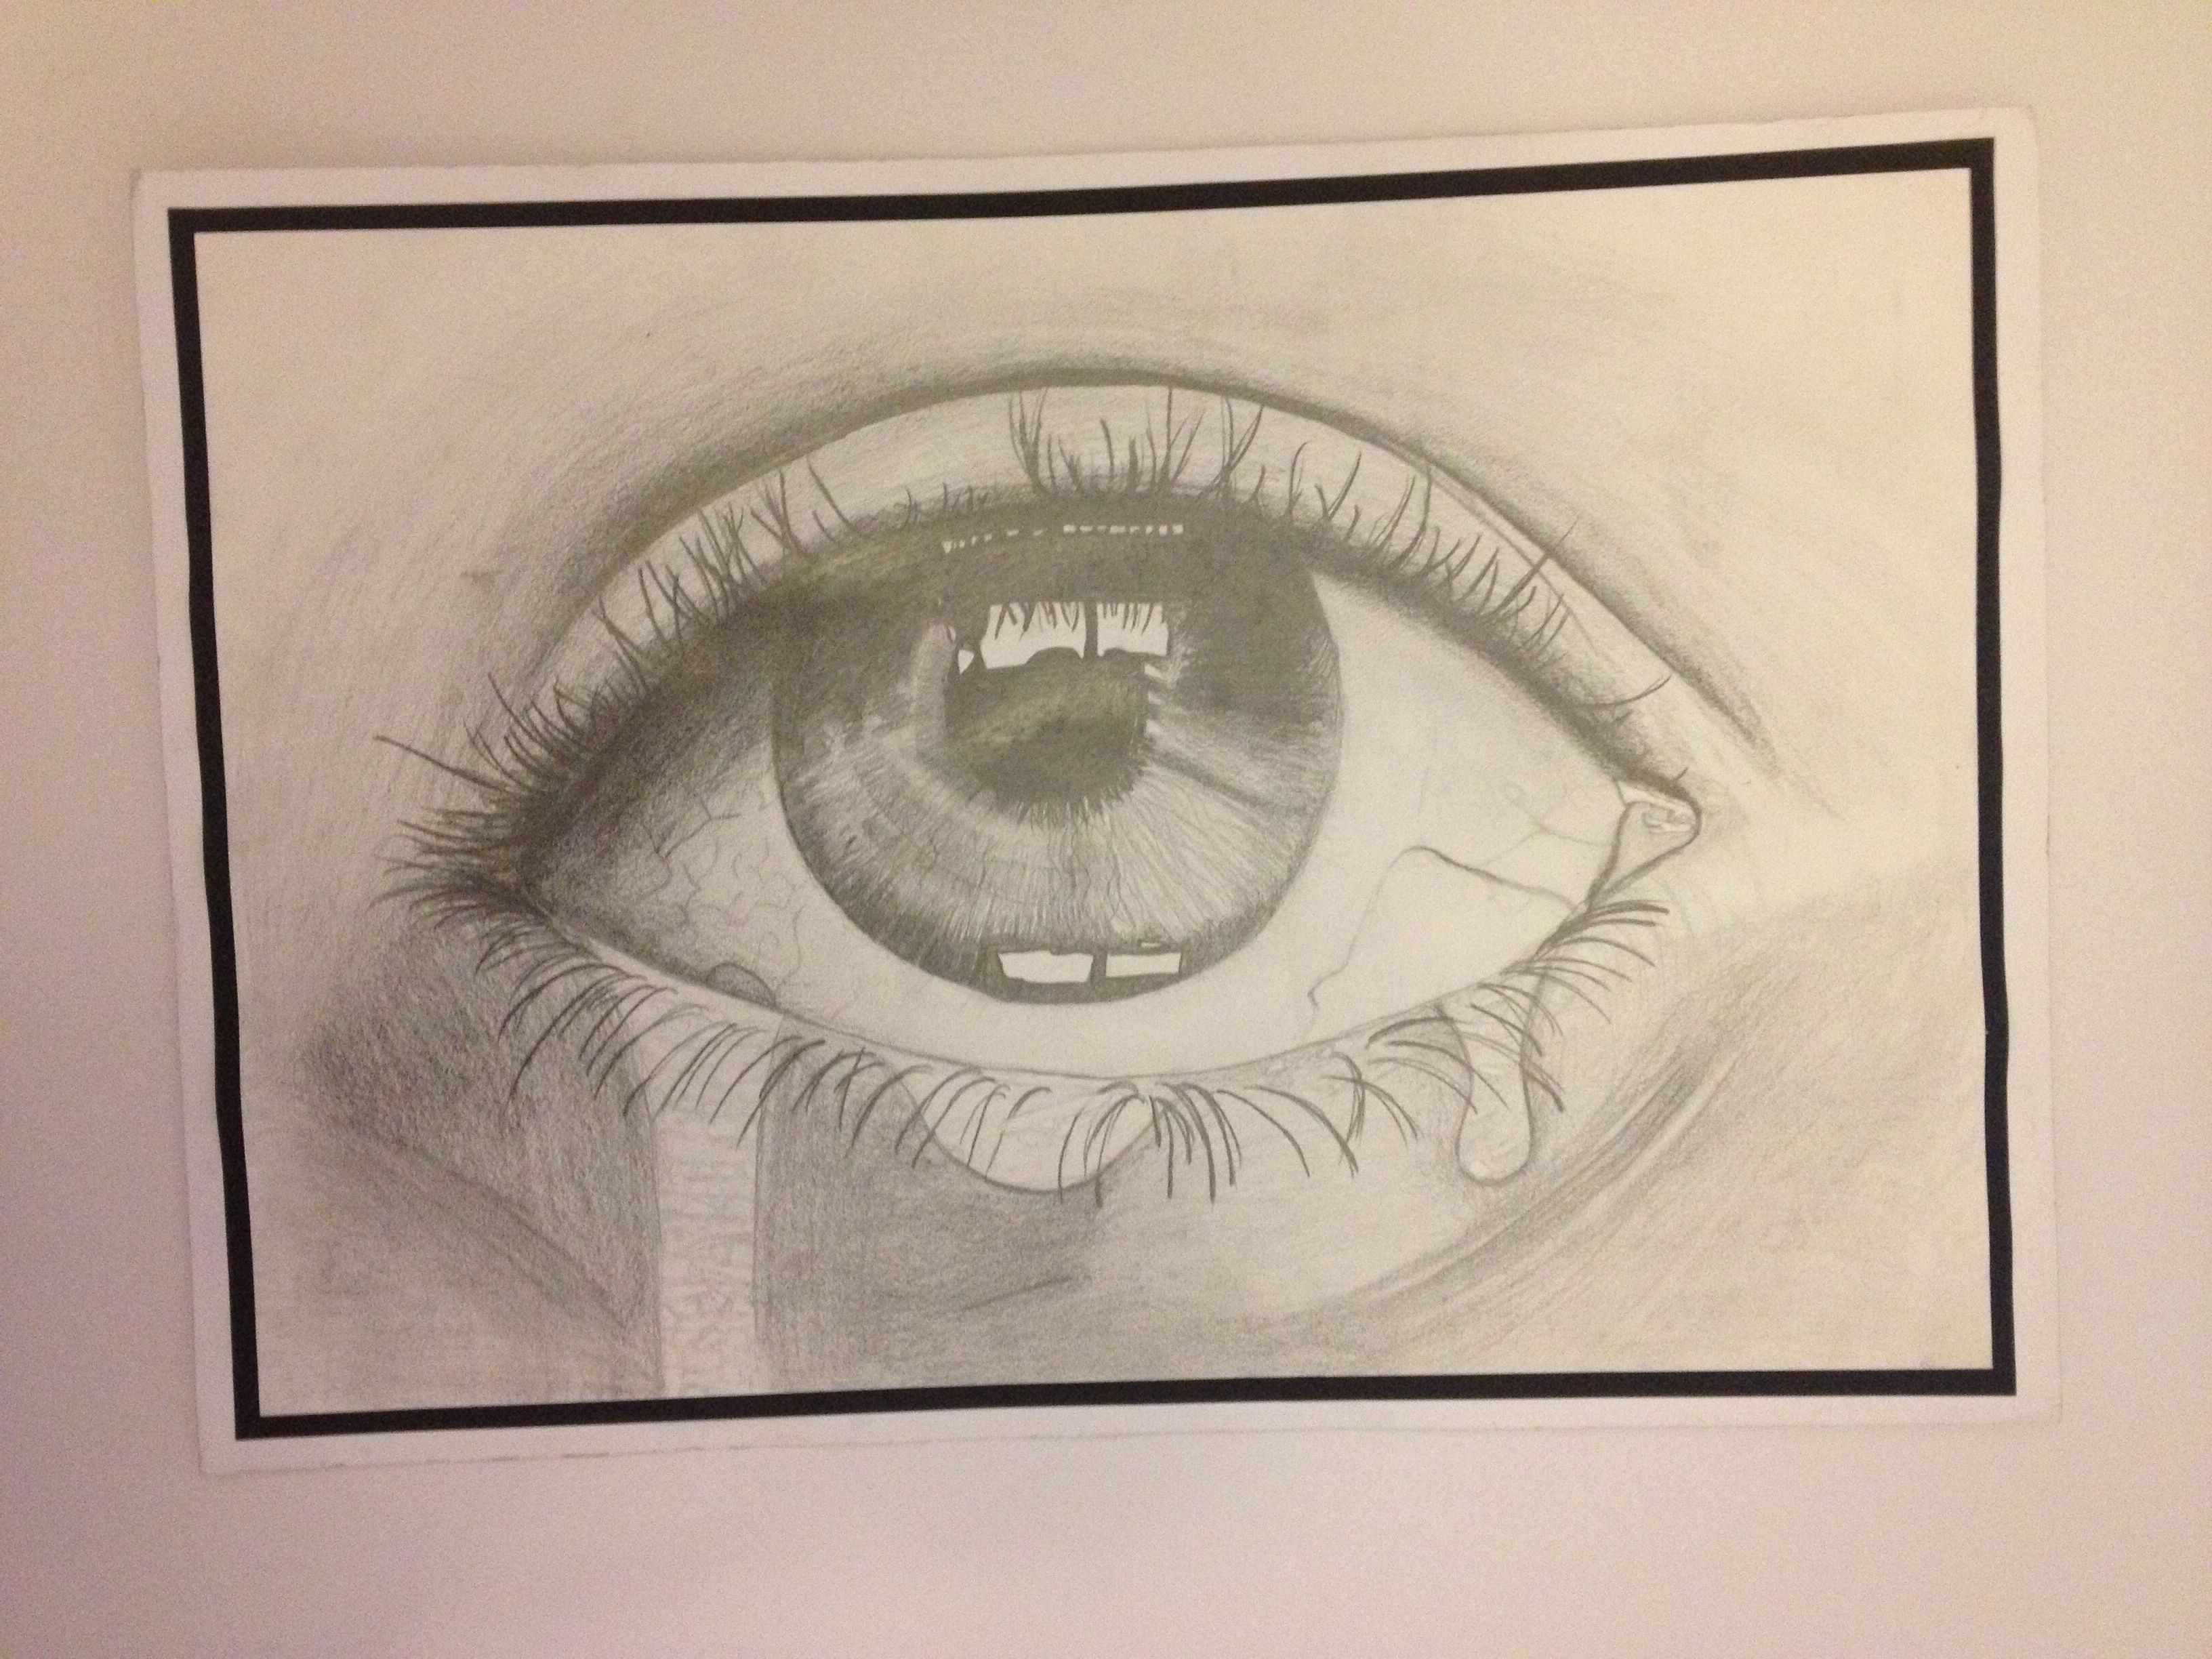 Tonal observational drawing of a crying eye